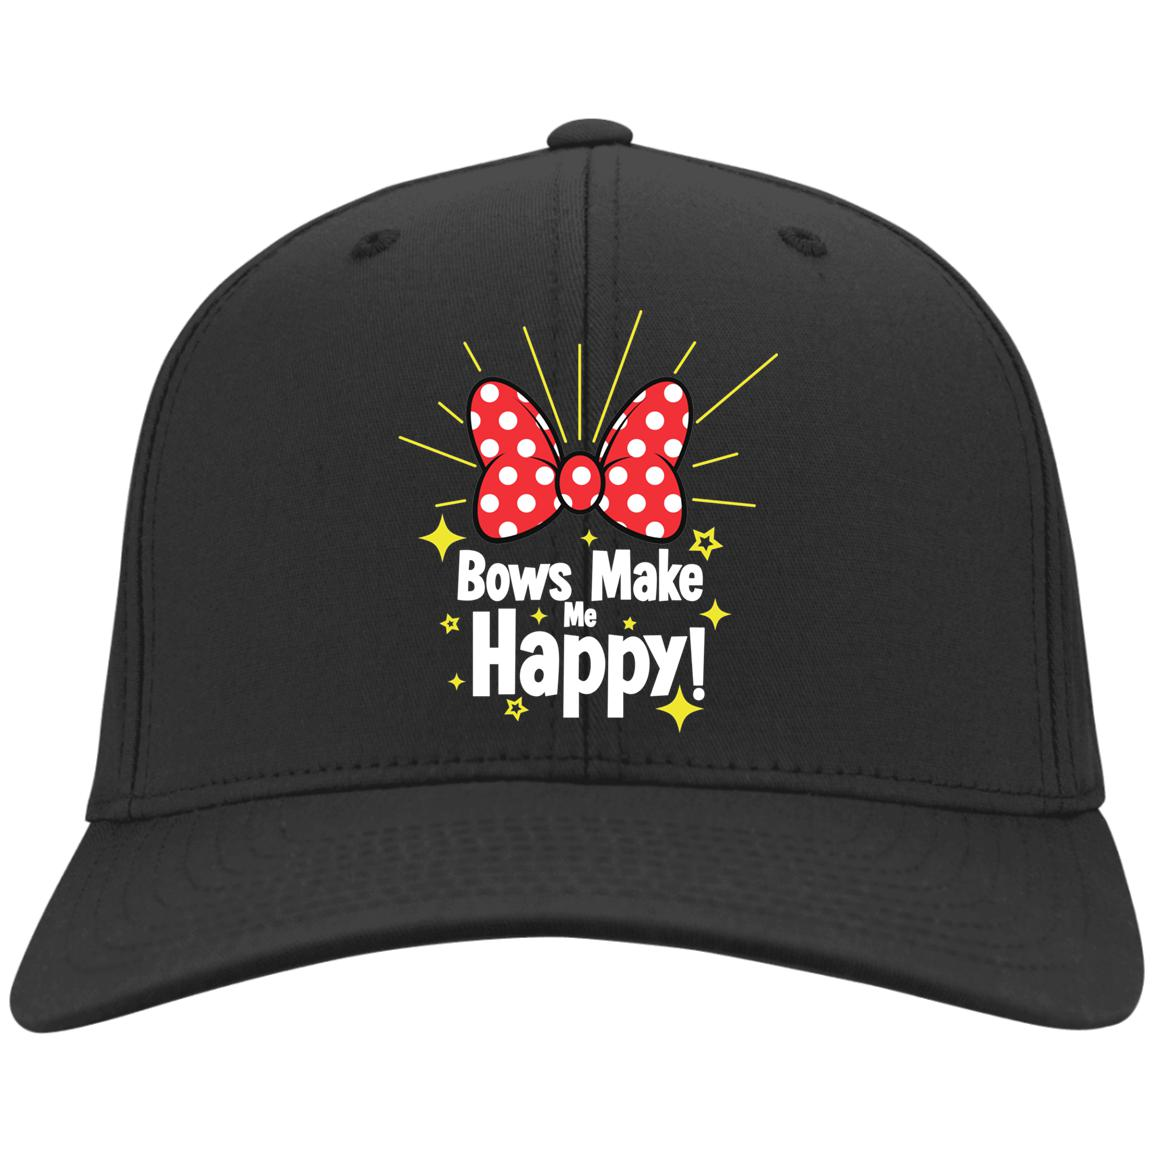 Bows Make Me Happy - Sport-Tek Youth Dri-Fit Nylon Cap